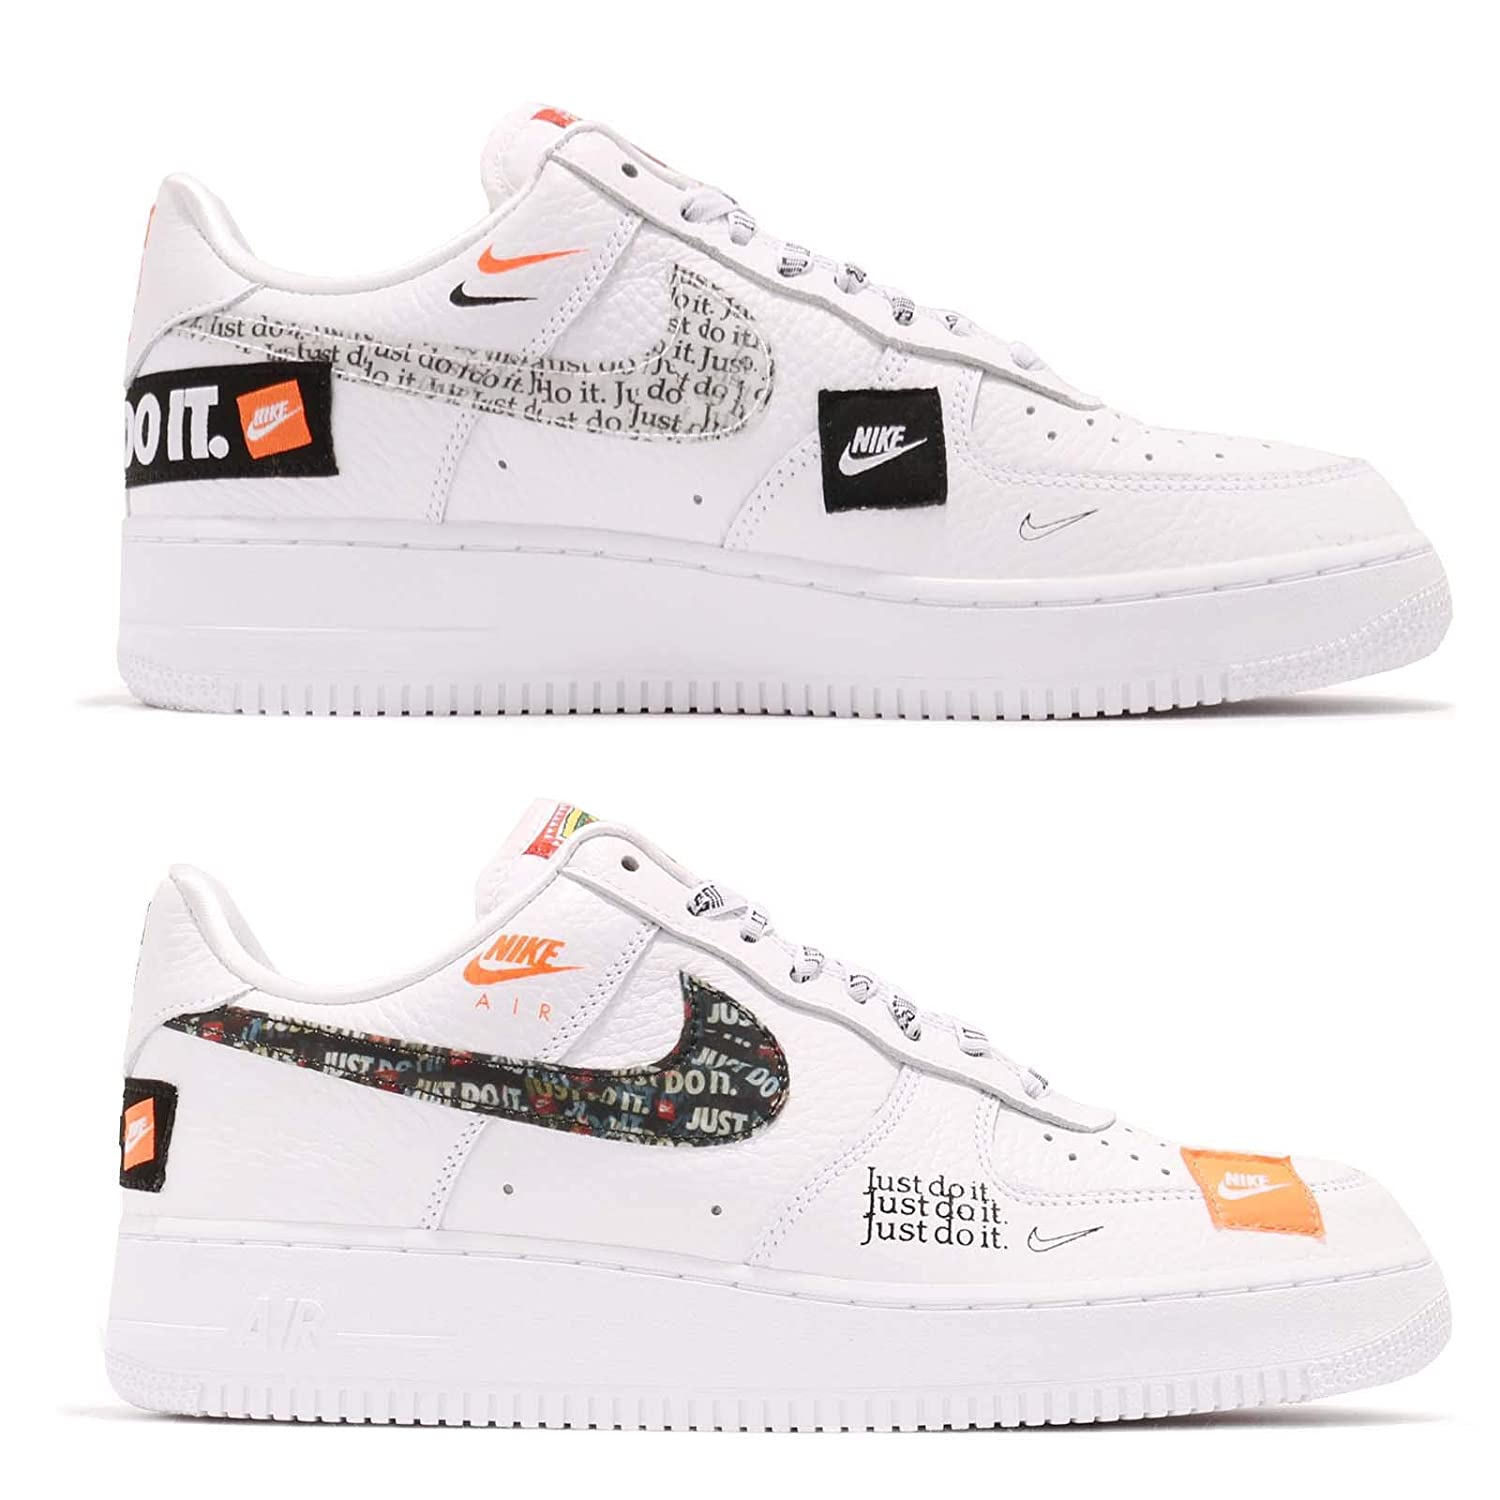 nike air force 1 just do it amazon